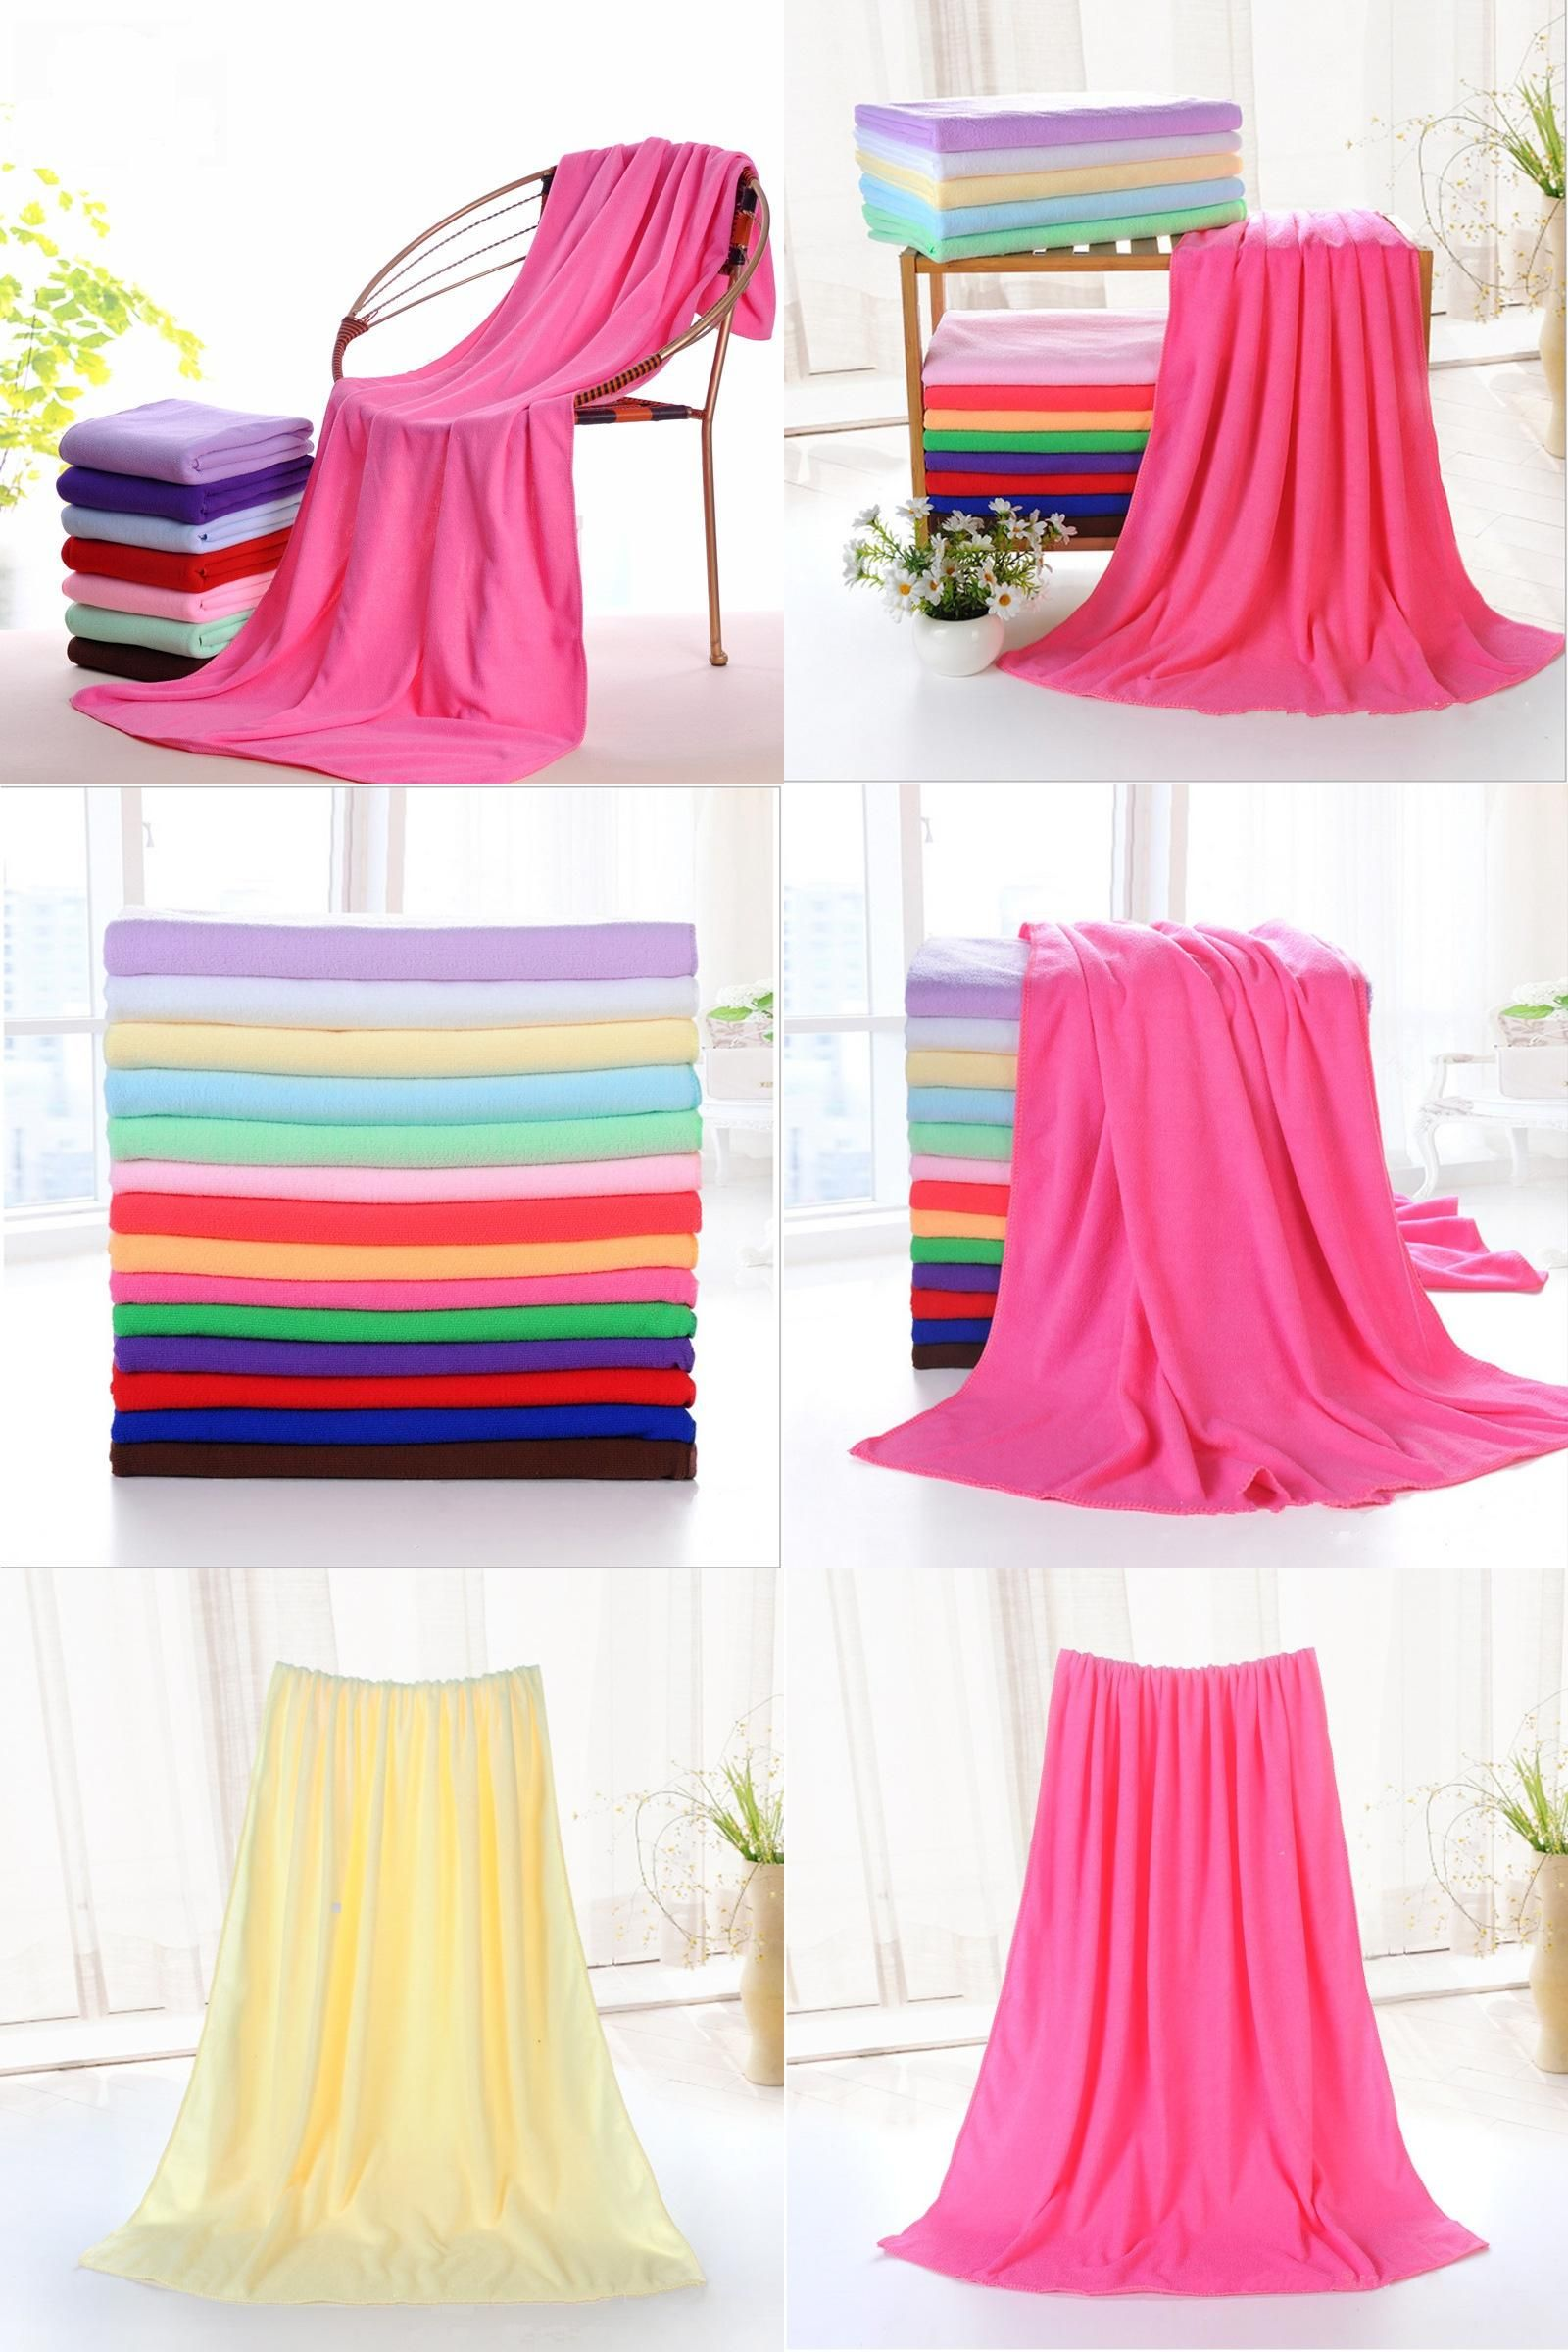 Visit To Buy 1pc Supersoft Microfiber Bath Towel Beach Towel